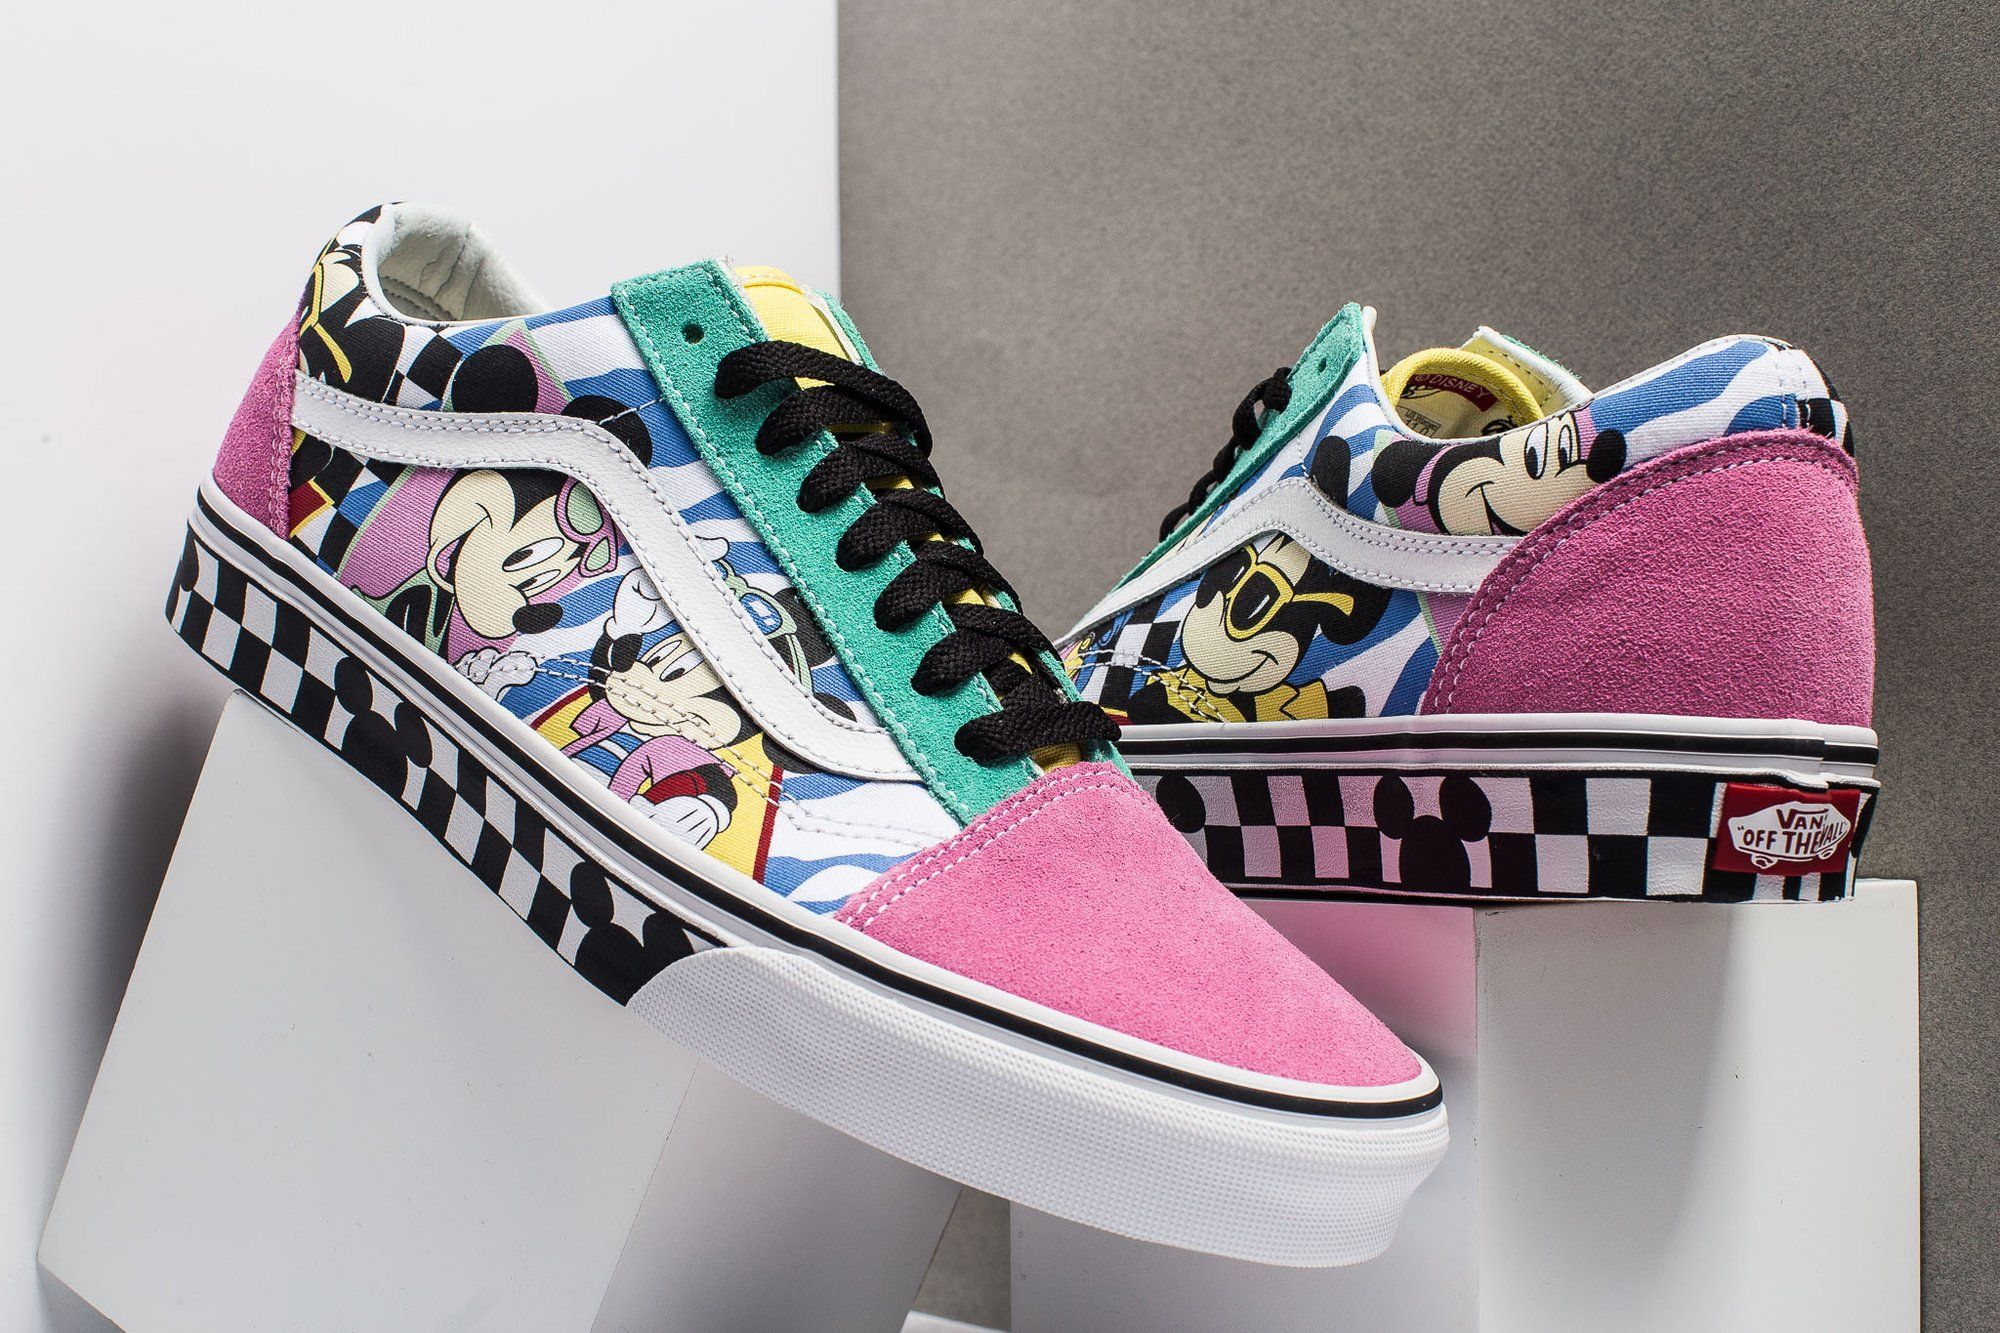 eeb6039cb5cea8 Disney x VANS UA OLD SKOOL 80's Mickey Mouse 90th #vans #disney #vansshoes  #vansauthentic #womens #pink #tiffany #blue #oldskool #girls #lady #fanshion